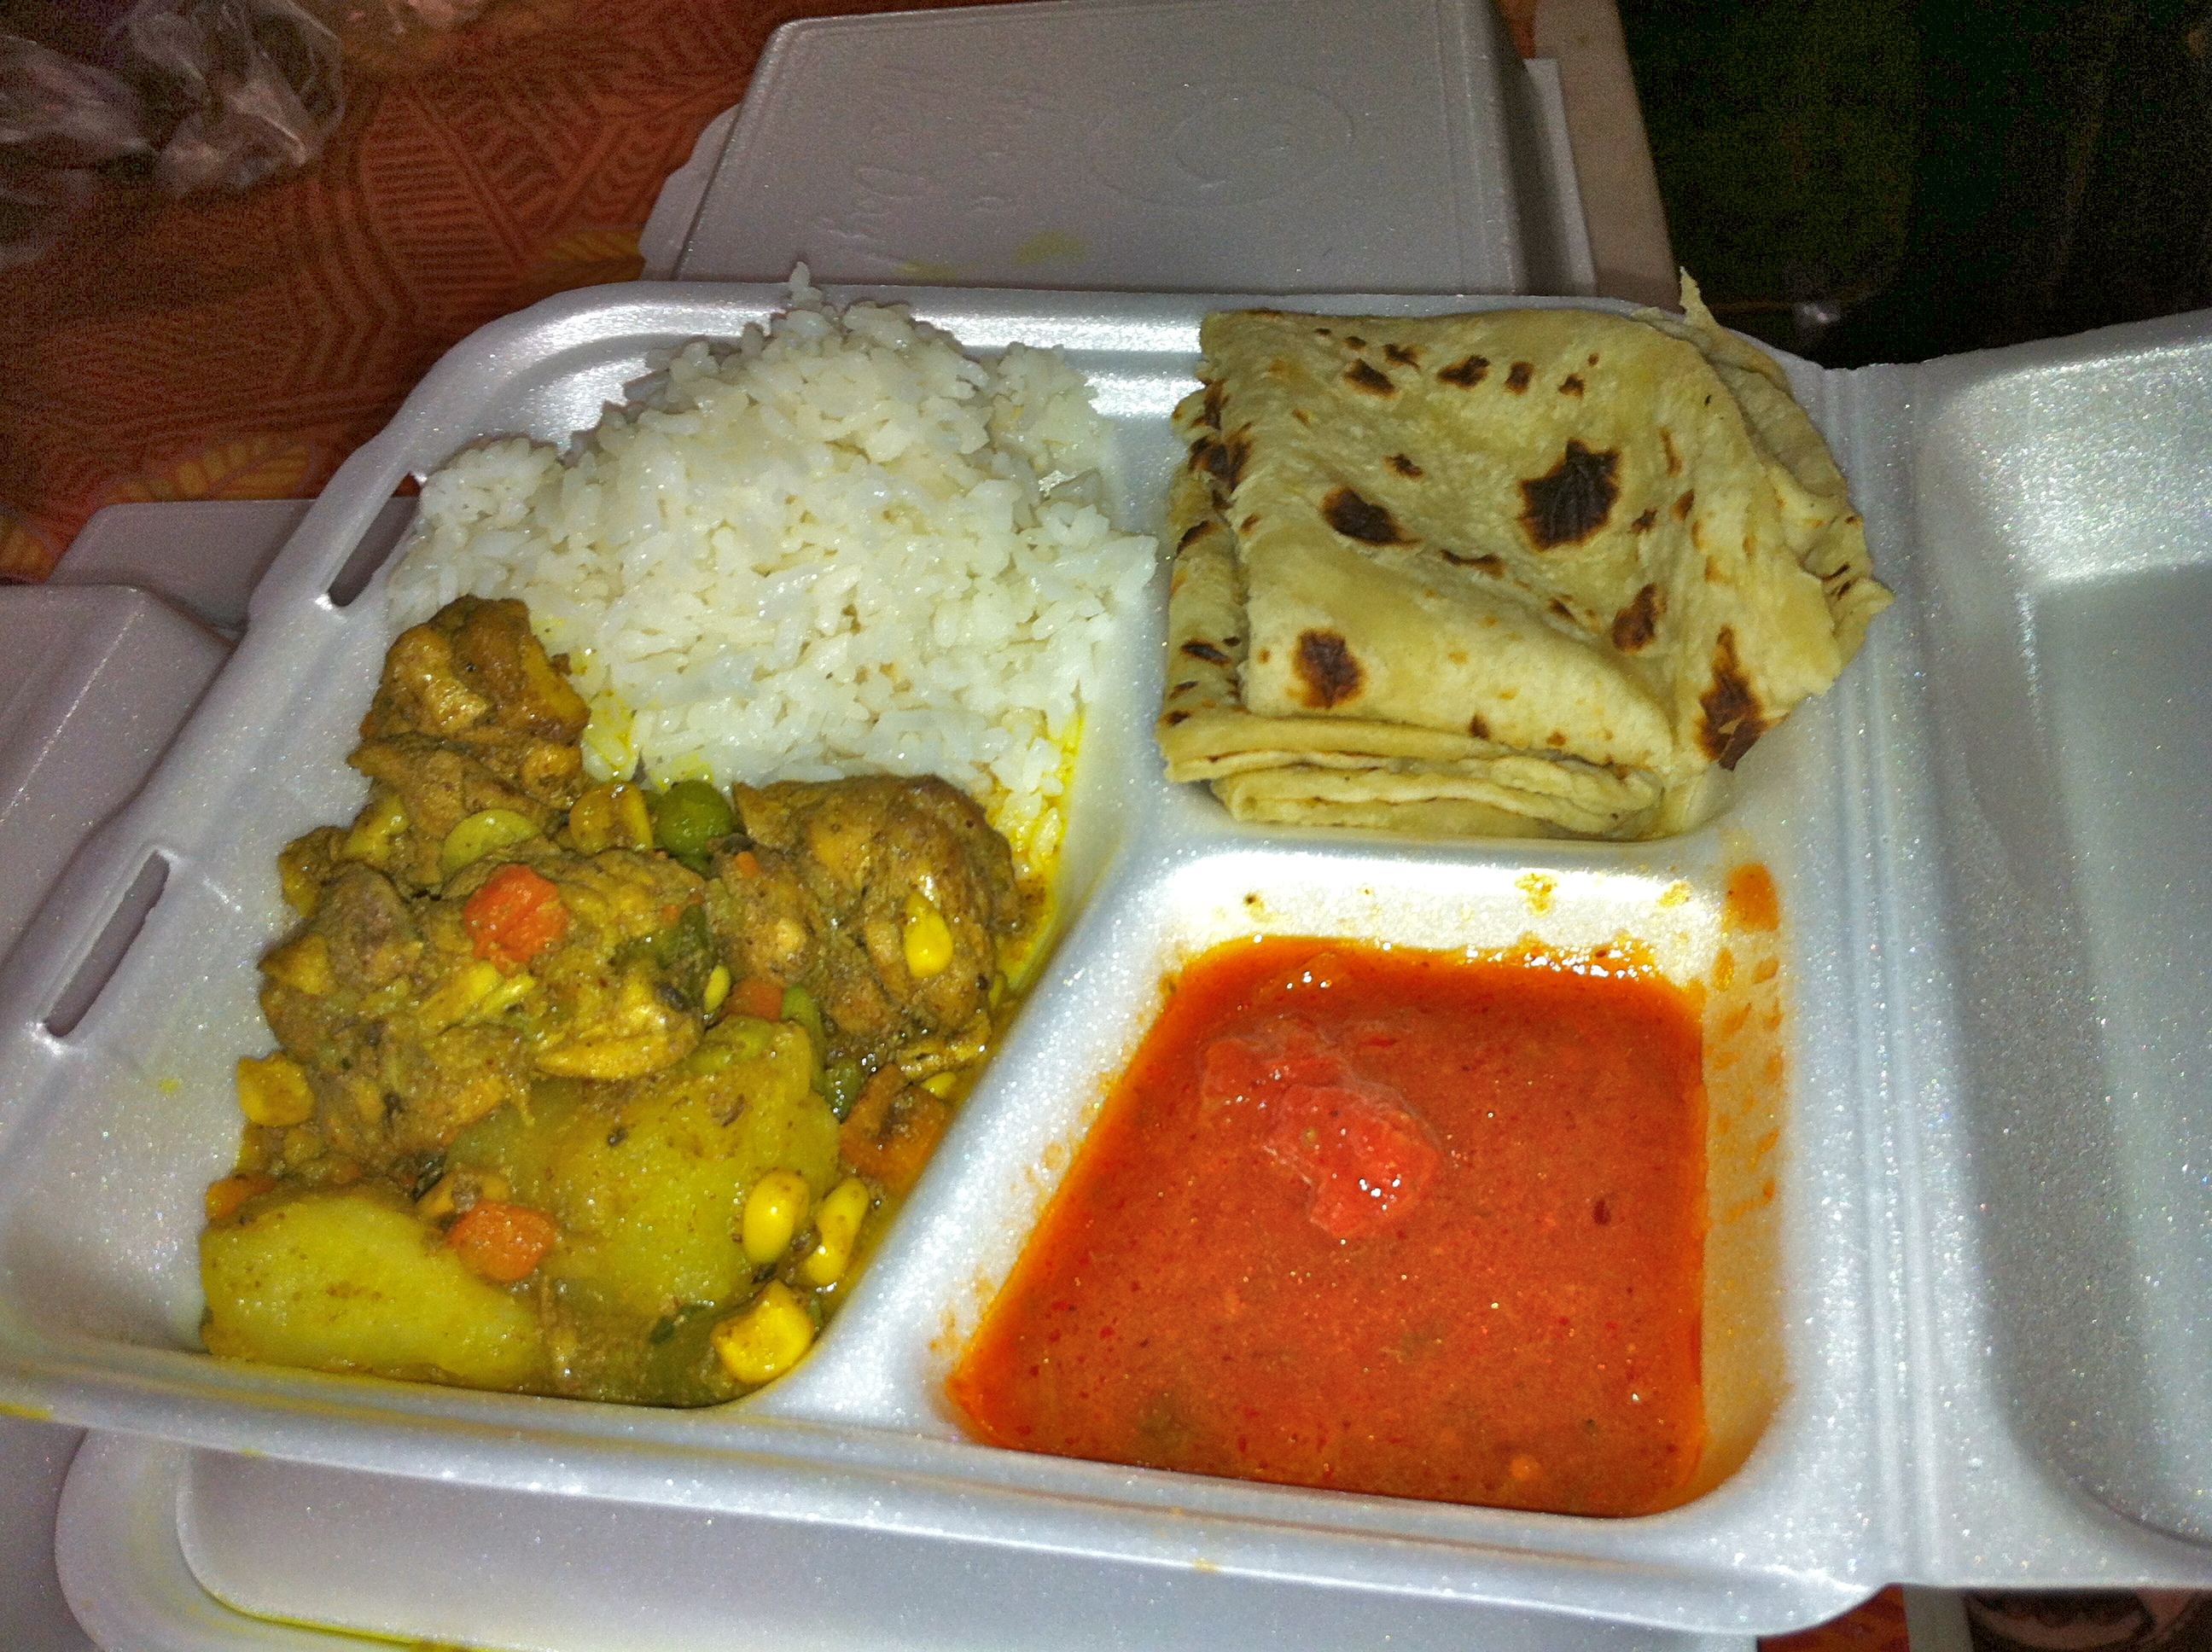 Indian curry at the market..most portion controlled thing there..but definitely still high in calories